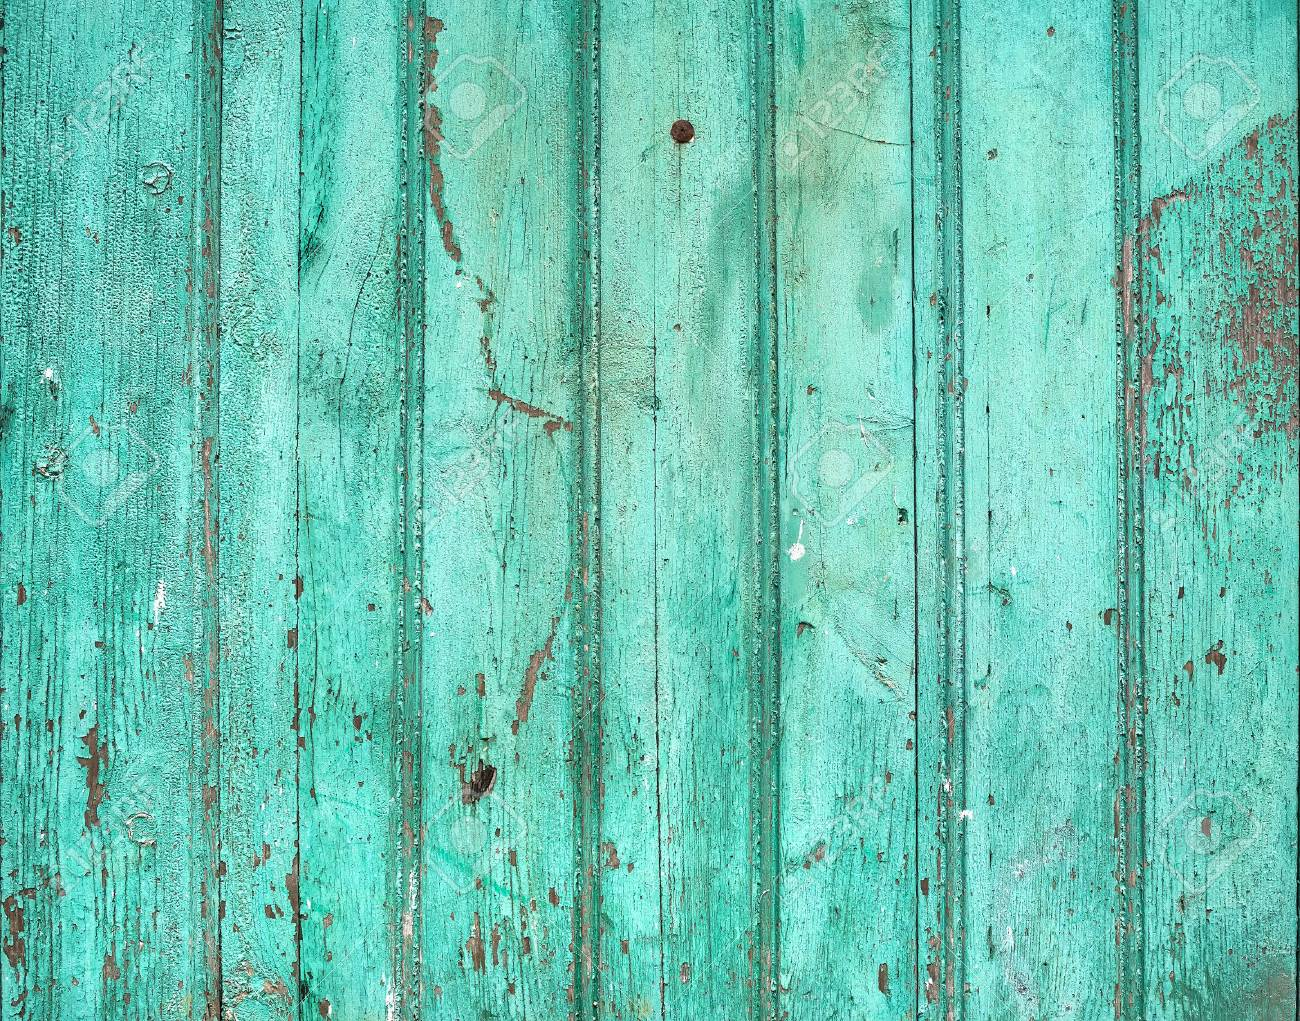 Old Rustic Painted Cracky Green Turqouise Wooden Texture Or Background Stock Photo